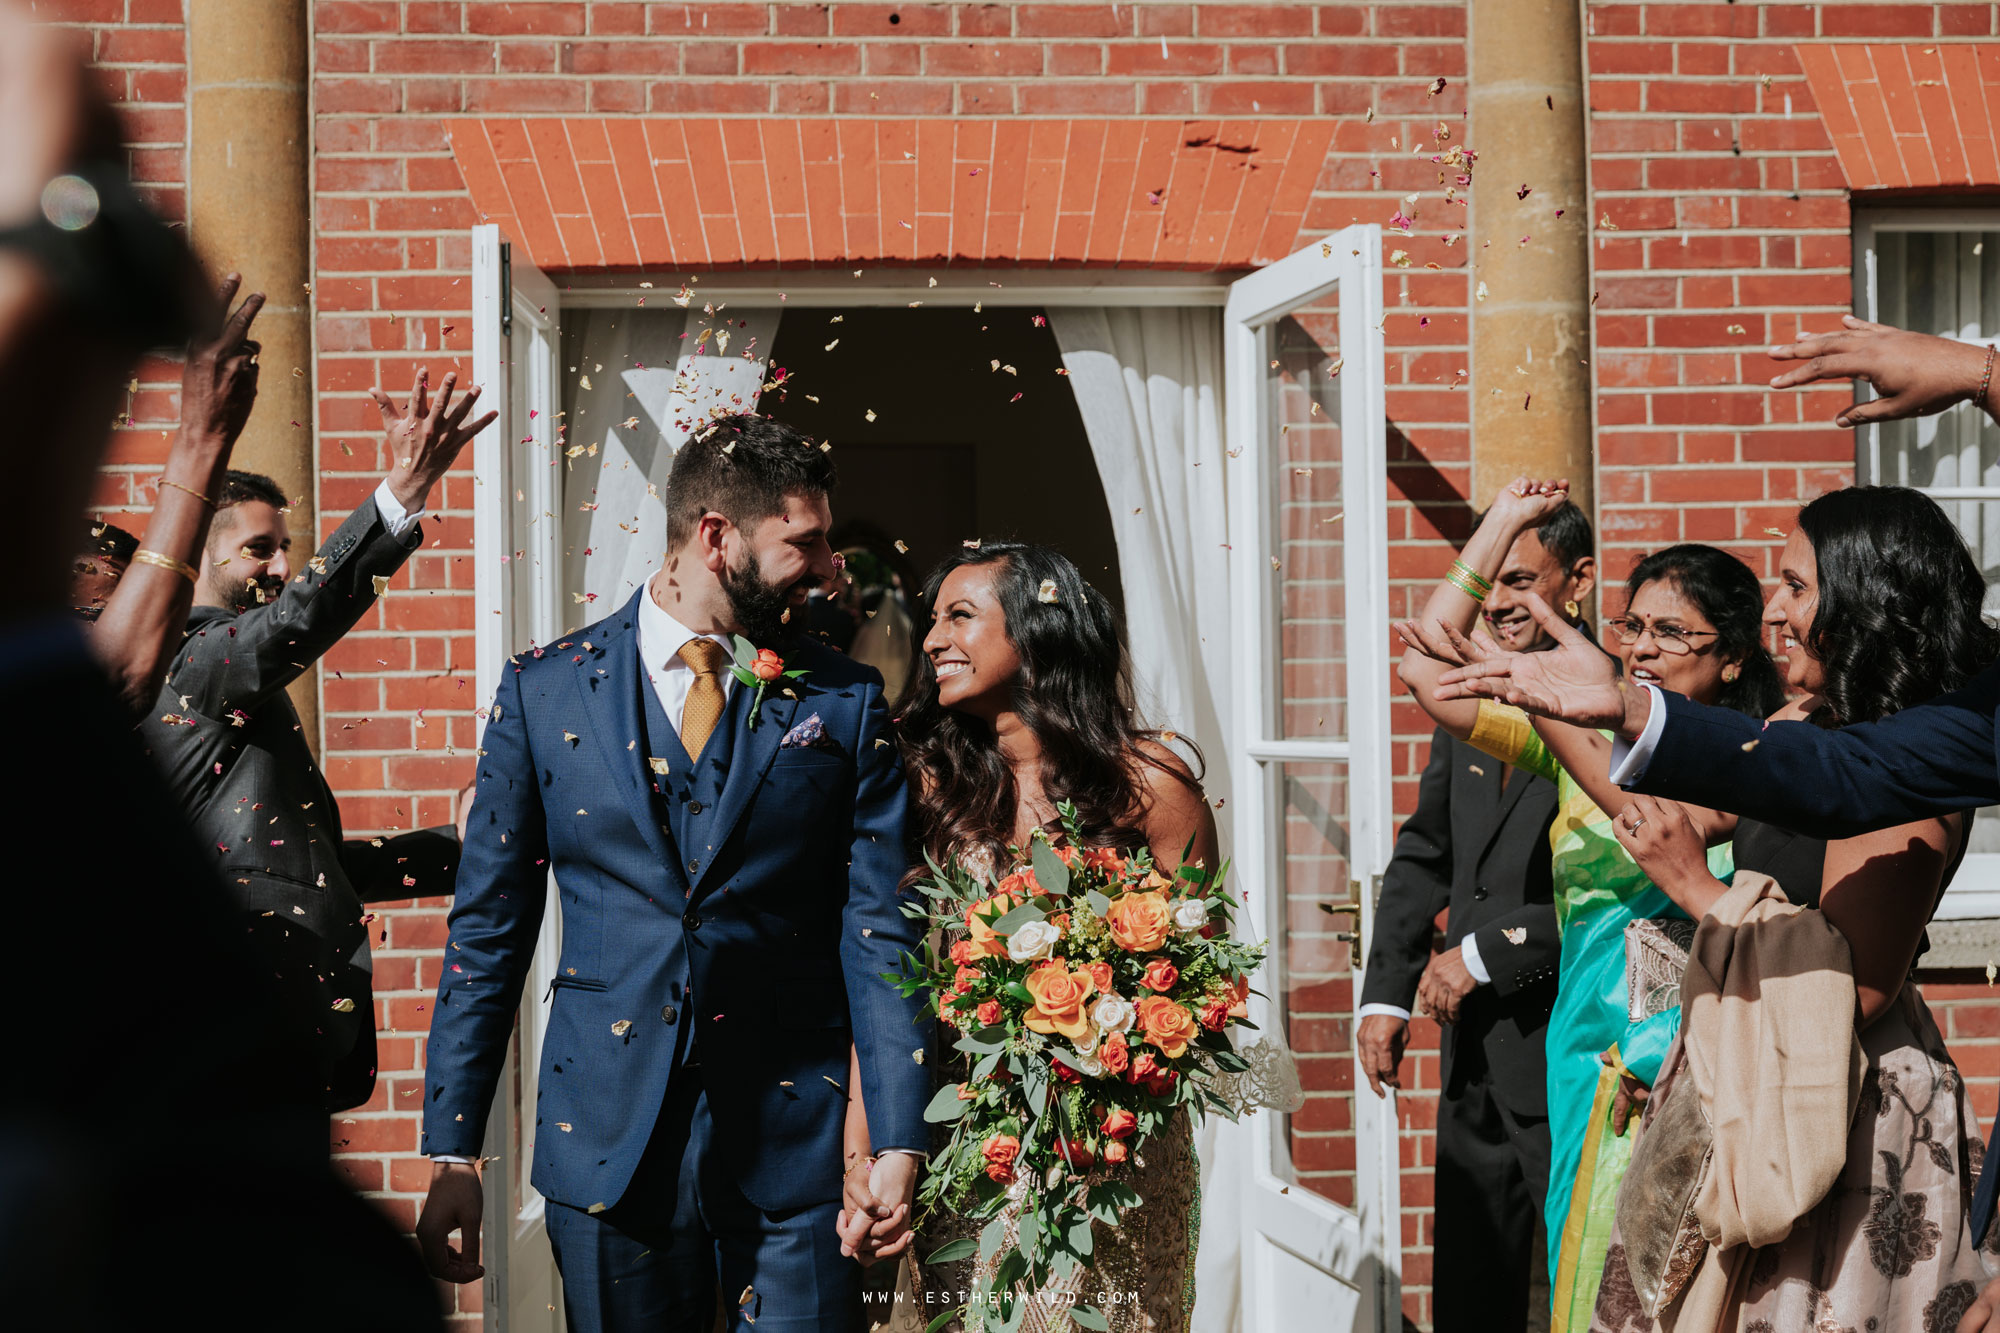 Twickenham_Registry_Office_London_Wedding_Ceremony_Esther_Wild_Photographer_IMG_0579.jpg